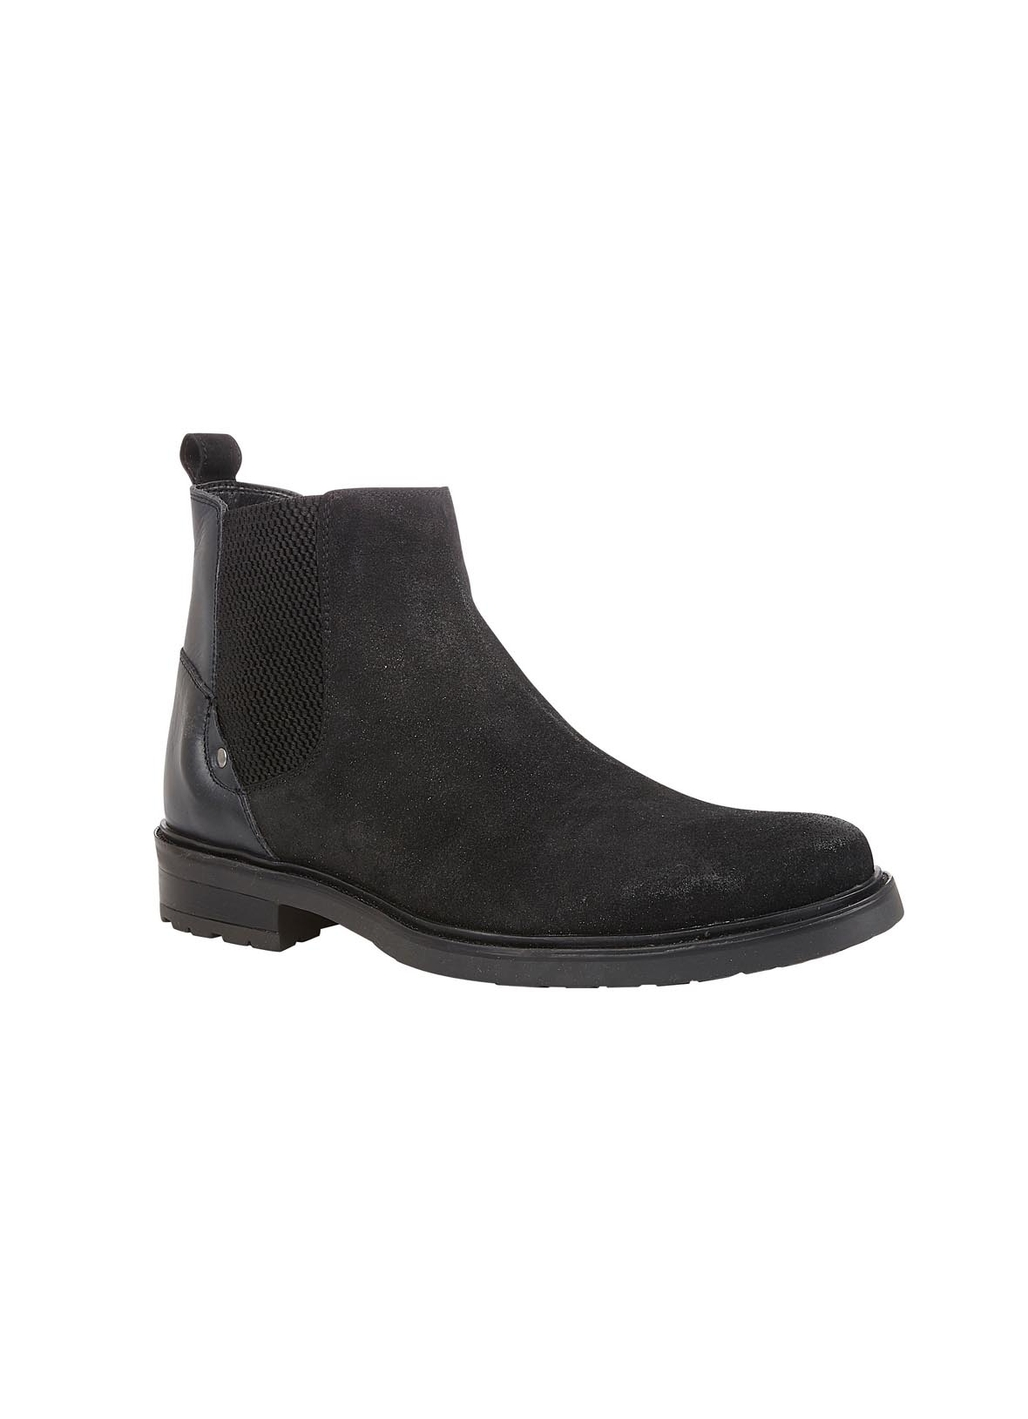 Lotus Fabian Leather & Suede Boot in Black